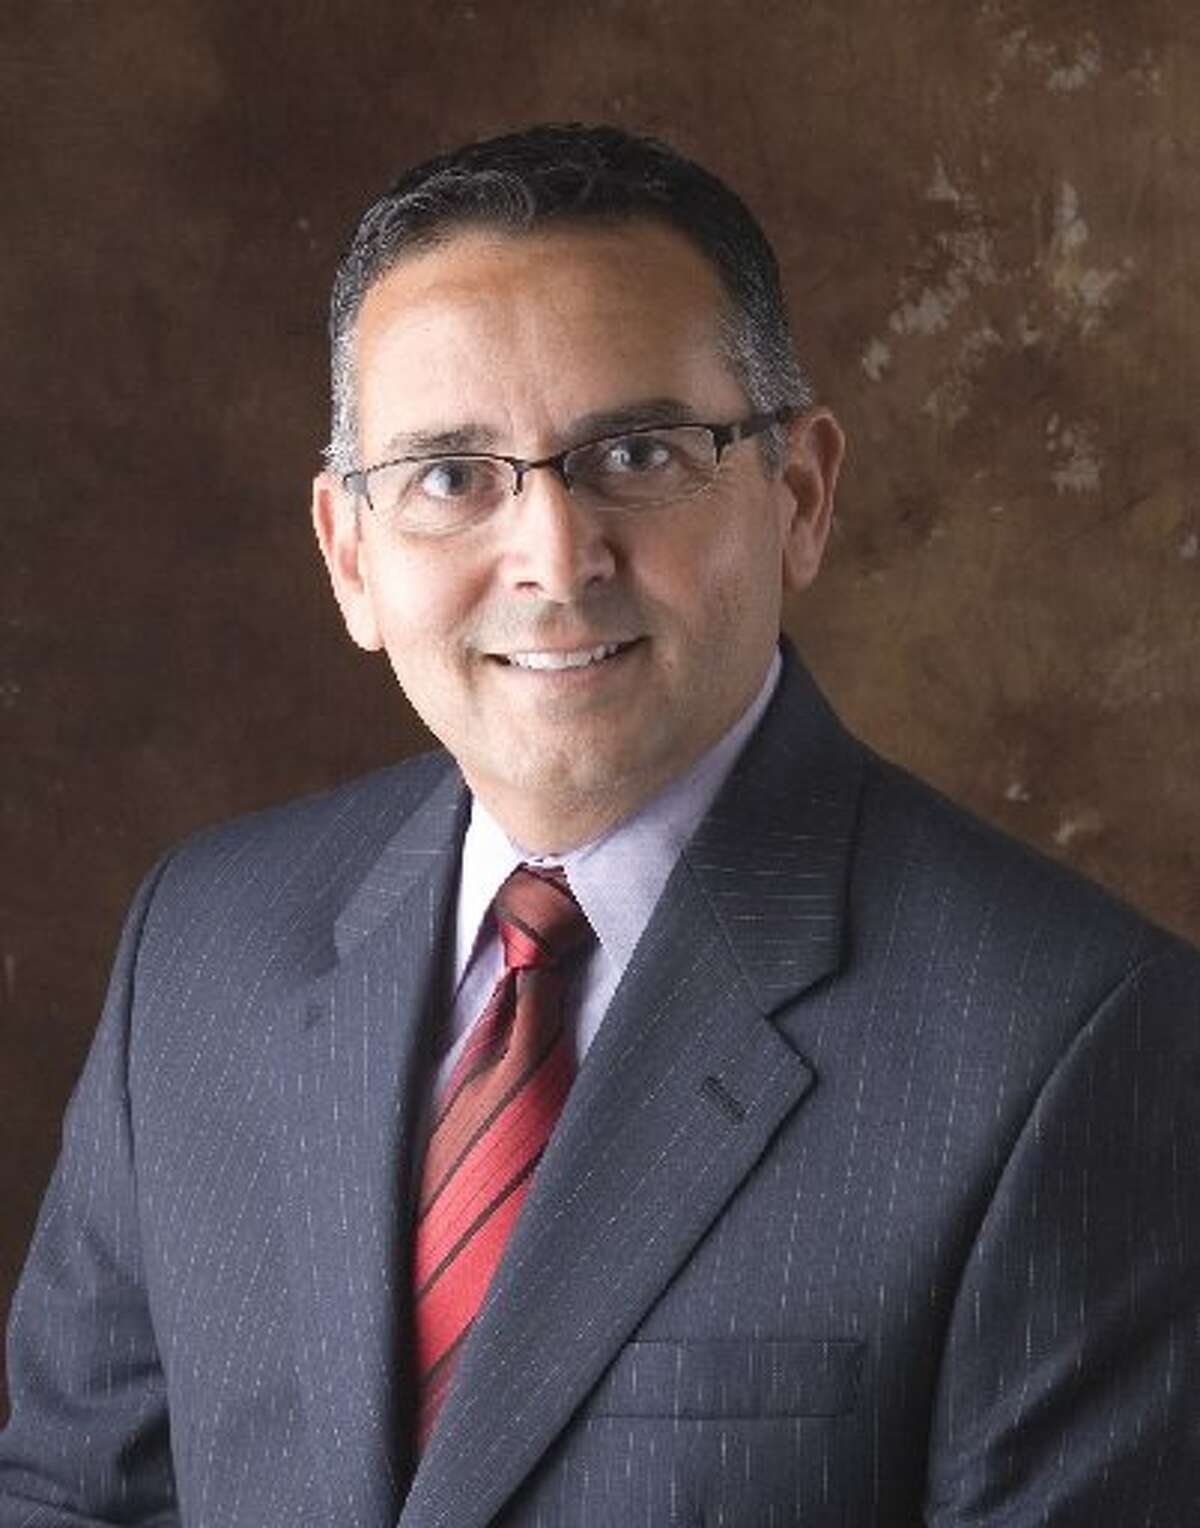 Ramiro Fonseca is seeking the HISD District 2 board seat for the second time.